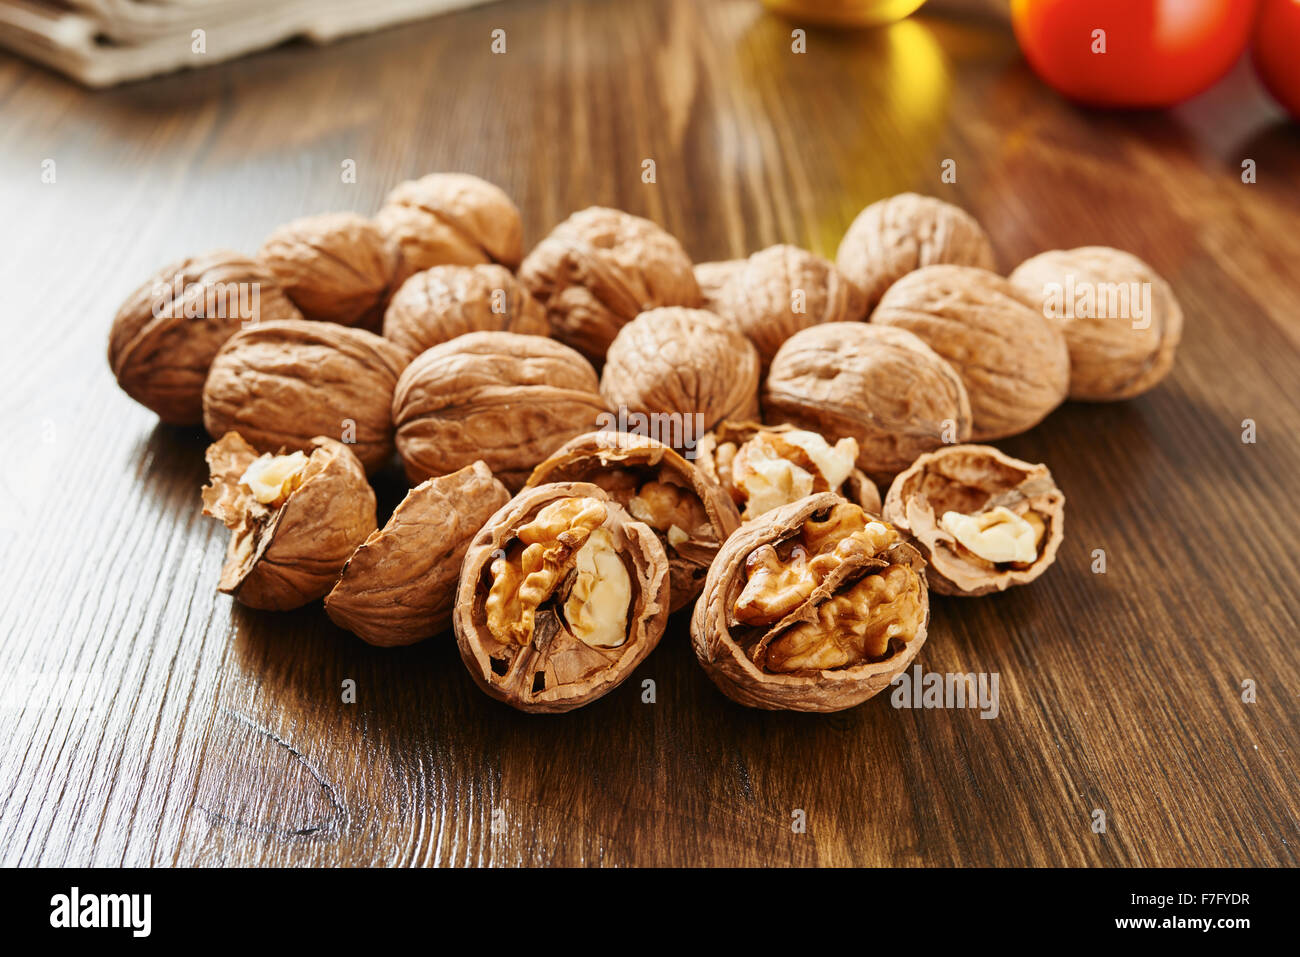 Walnuts on wooden table close up Stock Photo